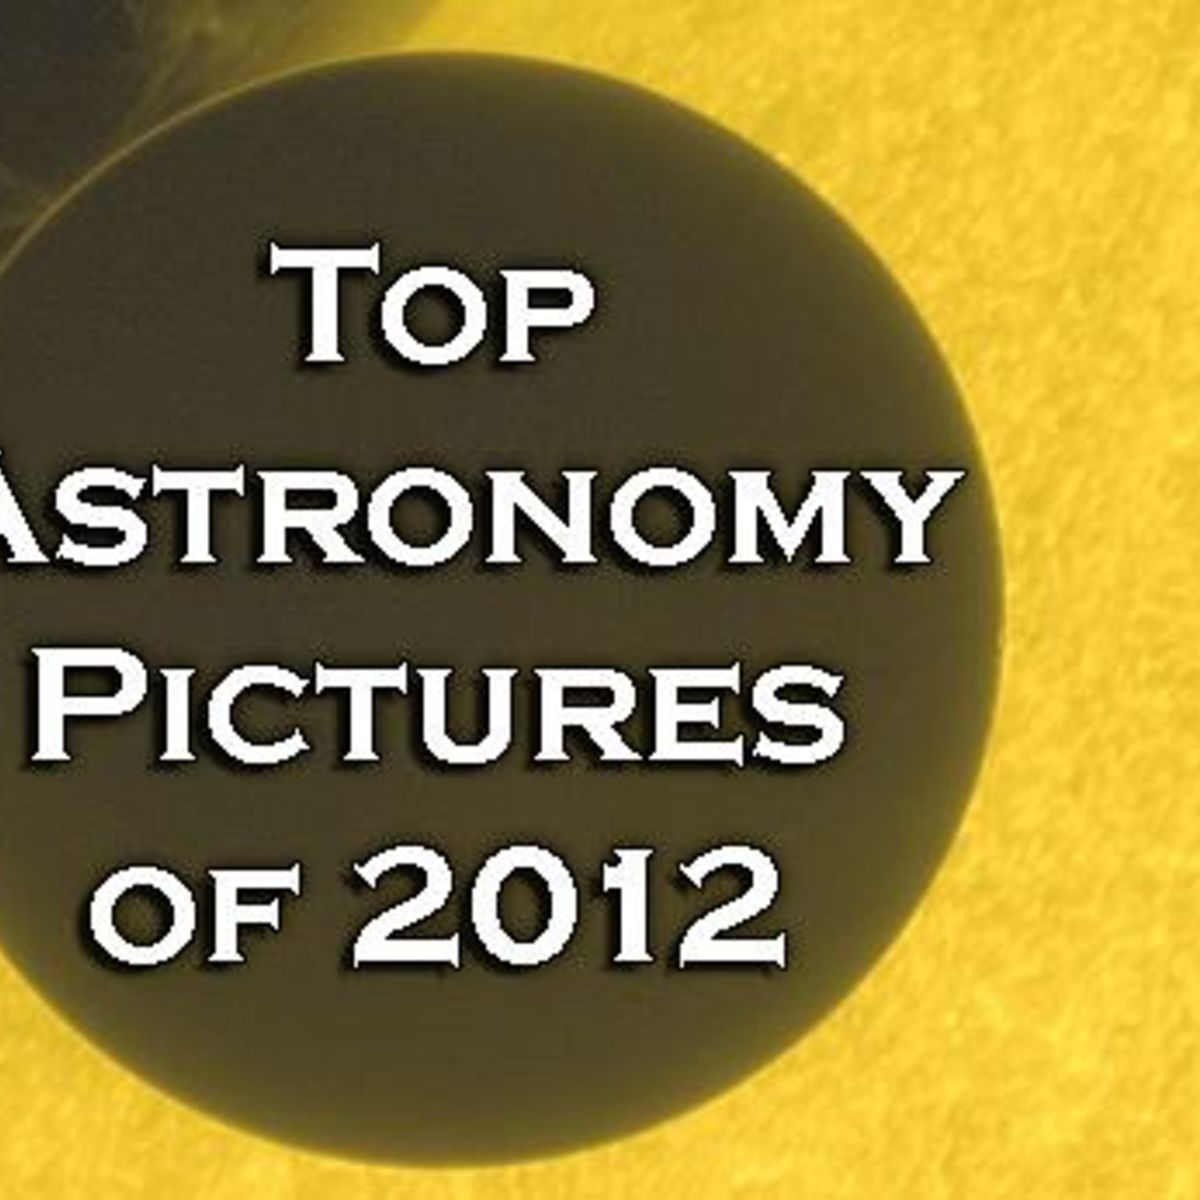 top_astronomy_pix_2012_title.jpg.CROP.rectangle-large.jpg